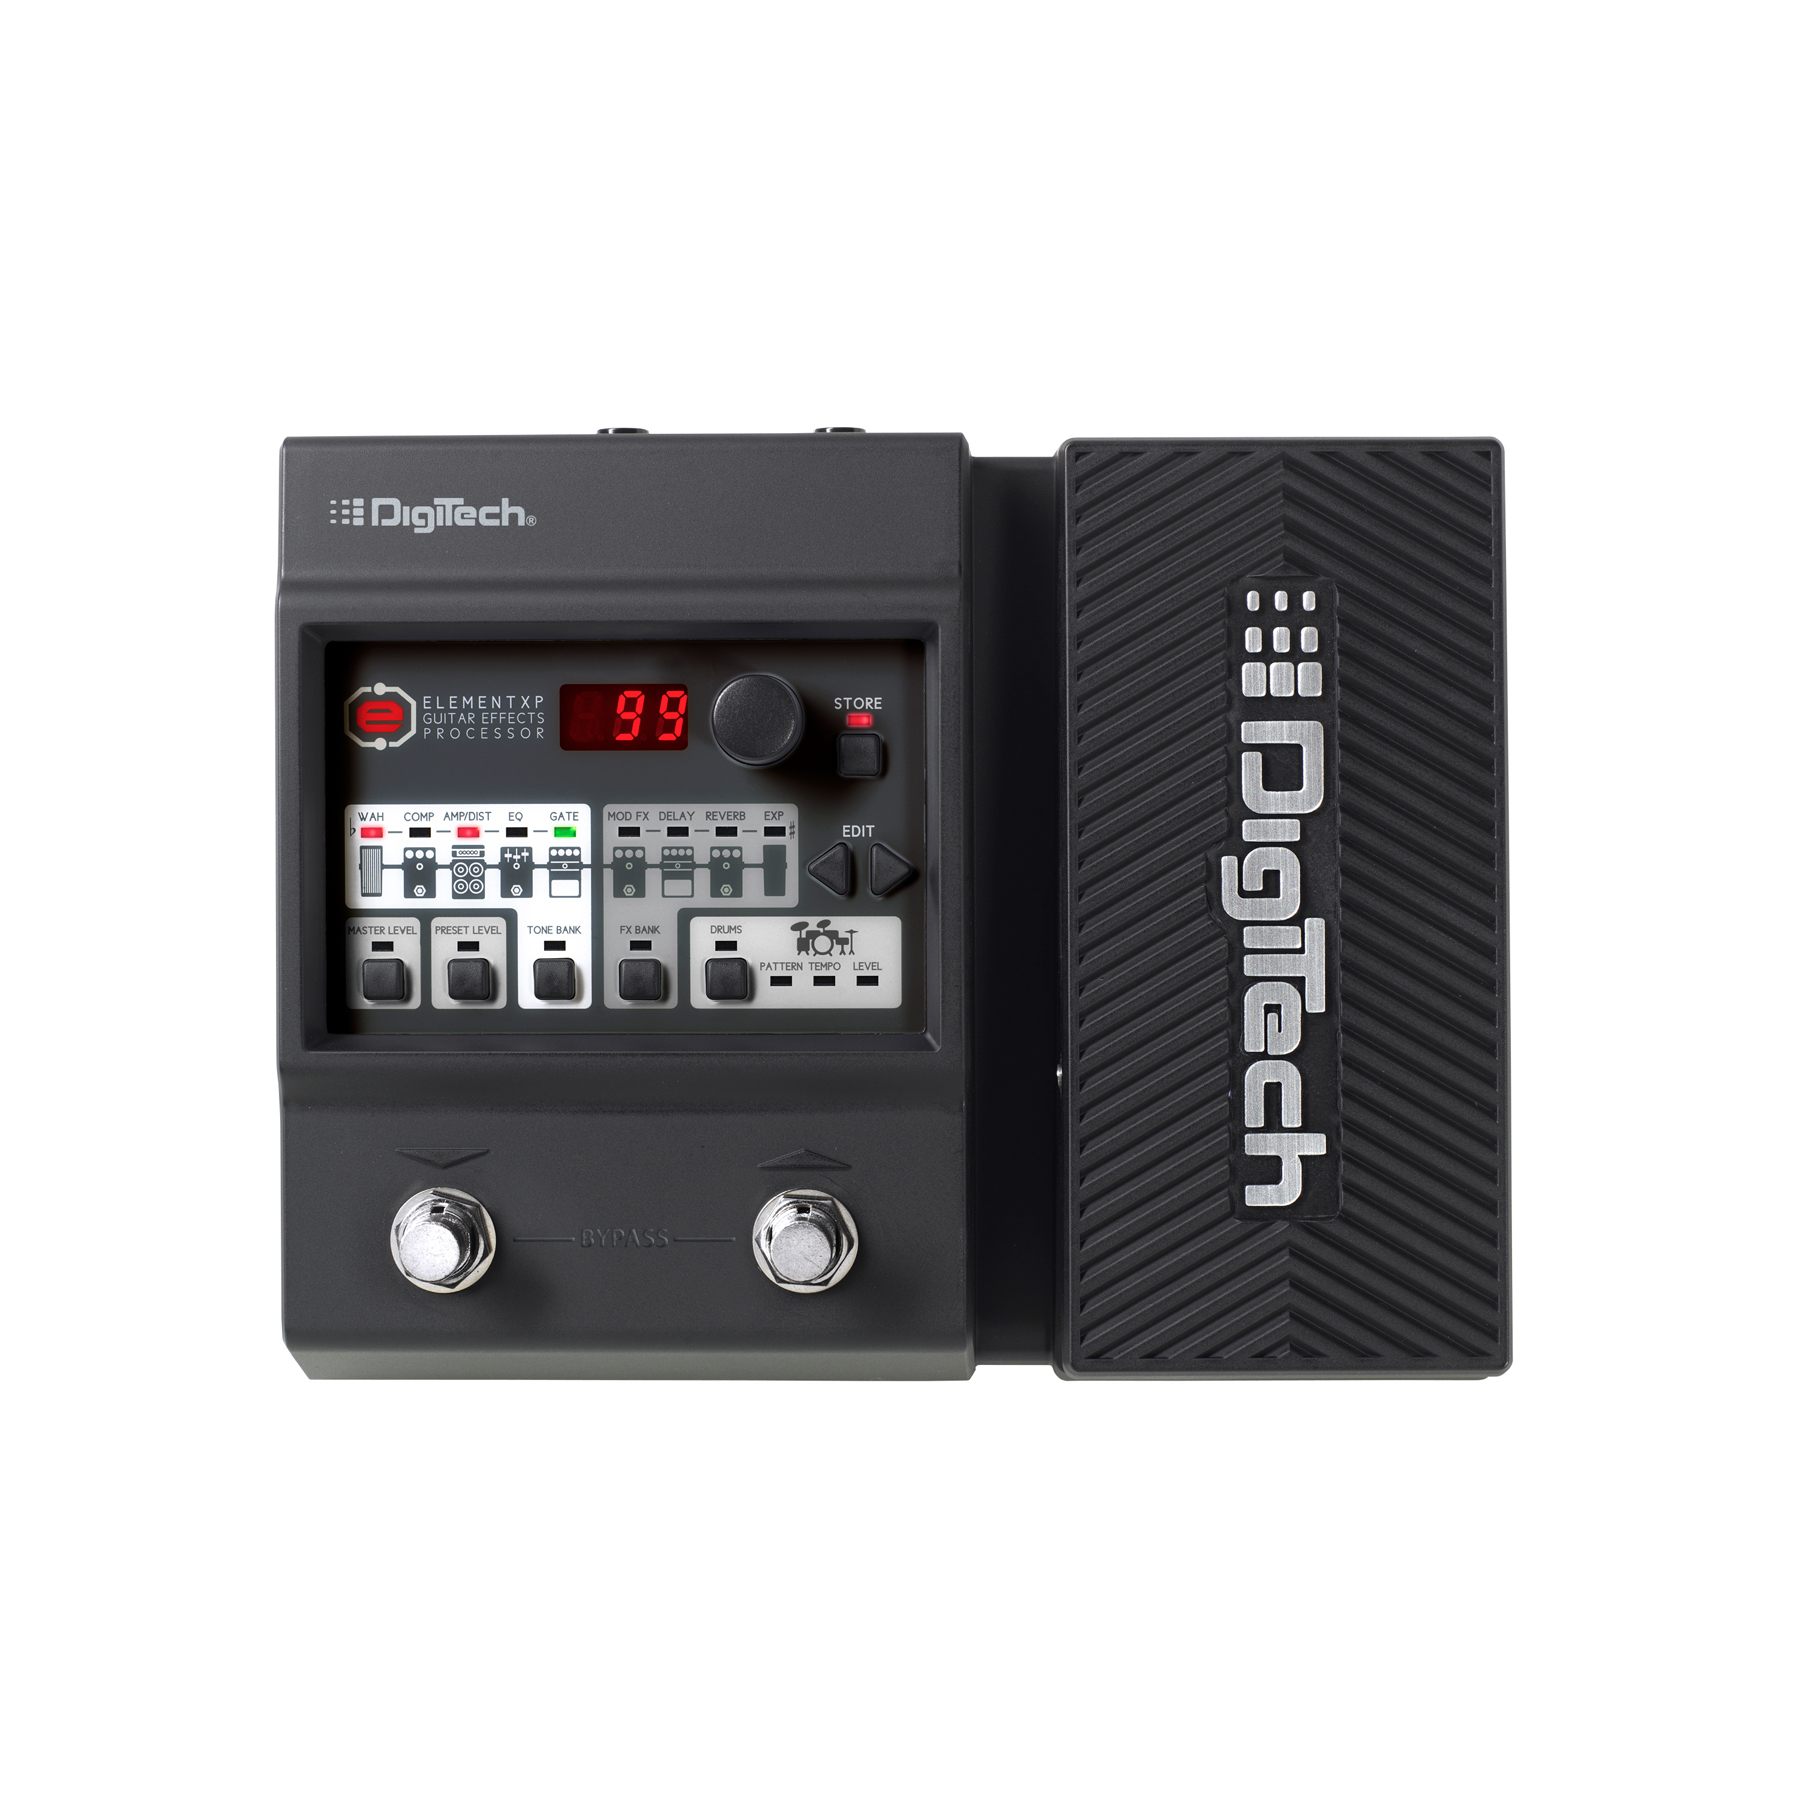 DigiTech Element XP Guitar Multi-Effects Pedal by DigiTech